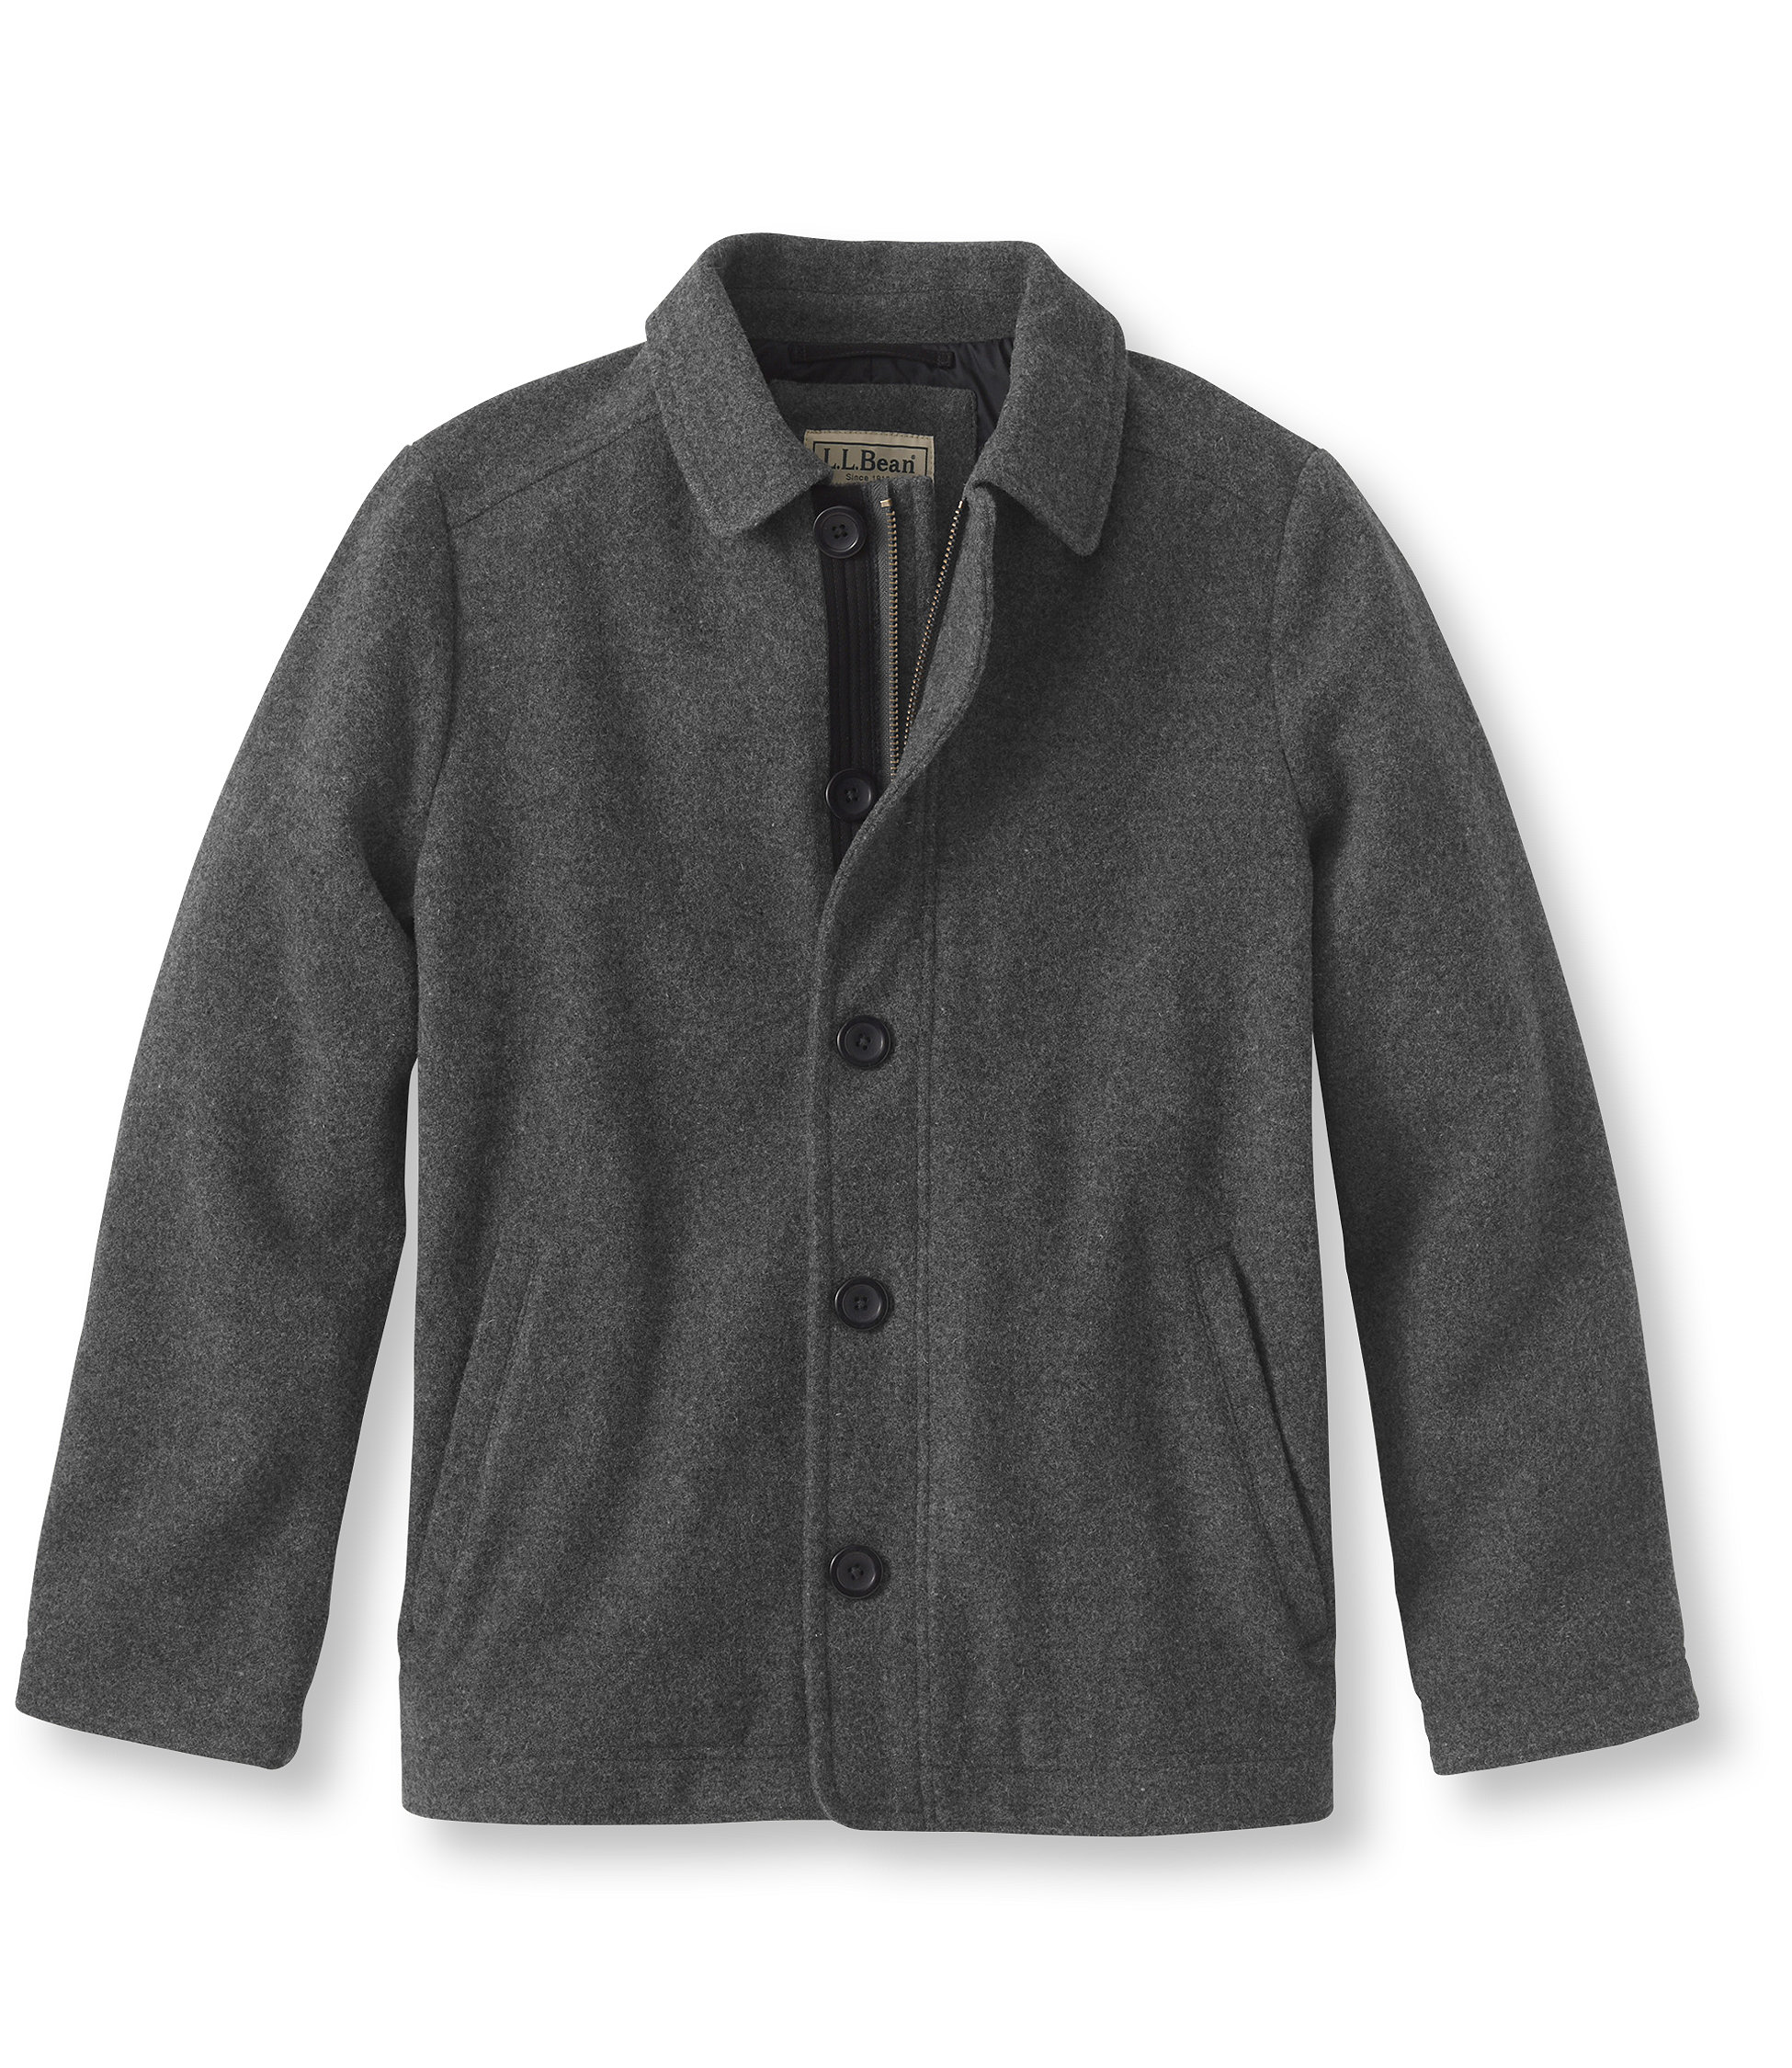 L.L.Bean Wool Jacket